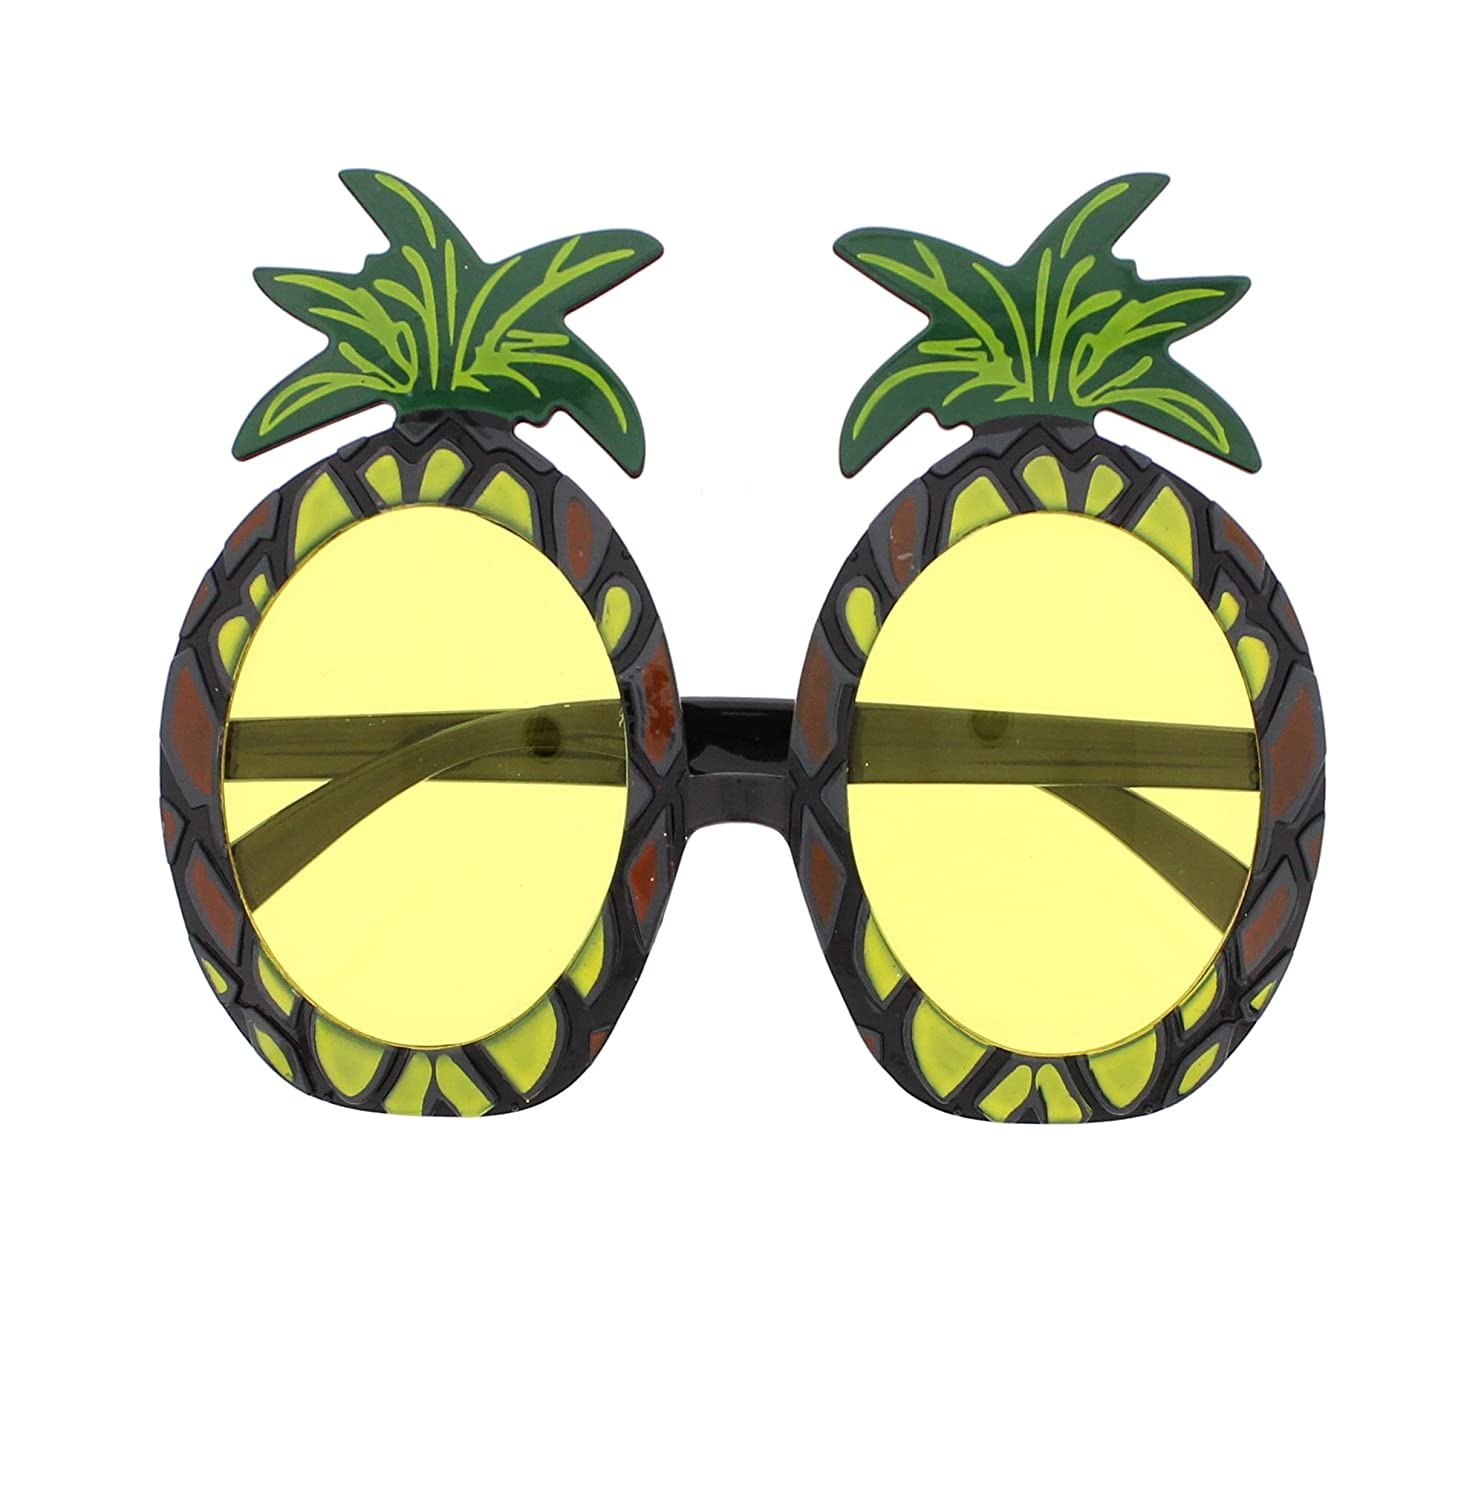 Zac/'s Alter Ego® Fun Tropical Themed Fancy Dress Glasses